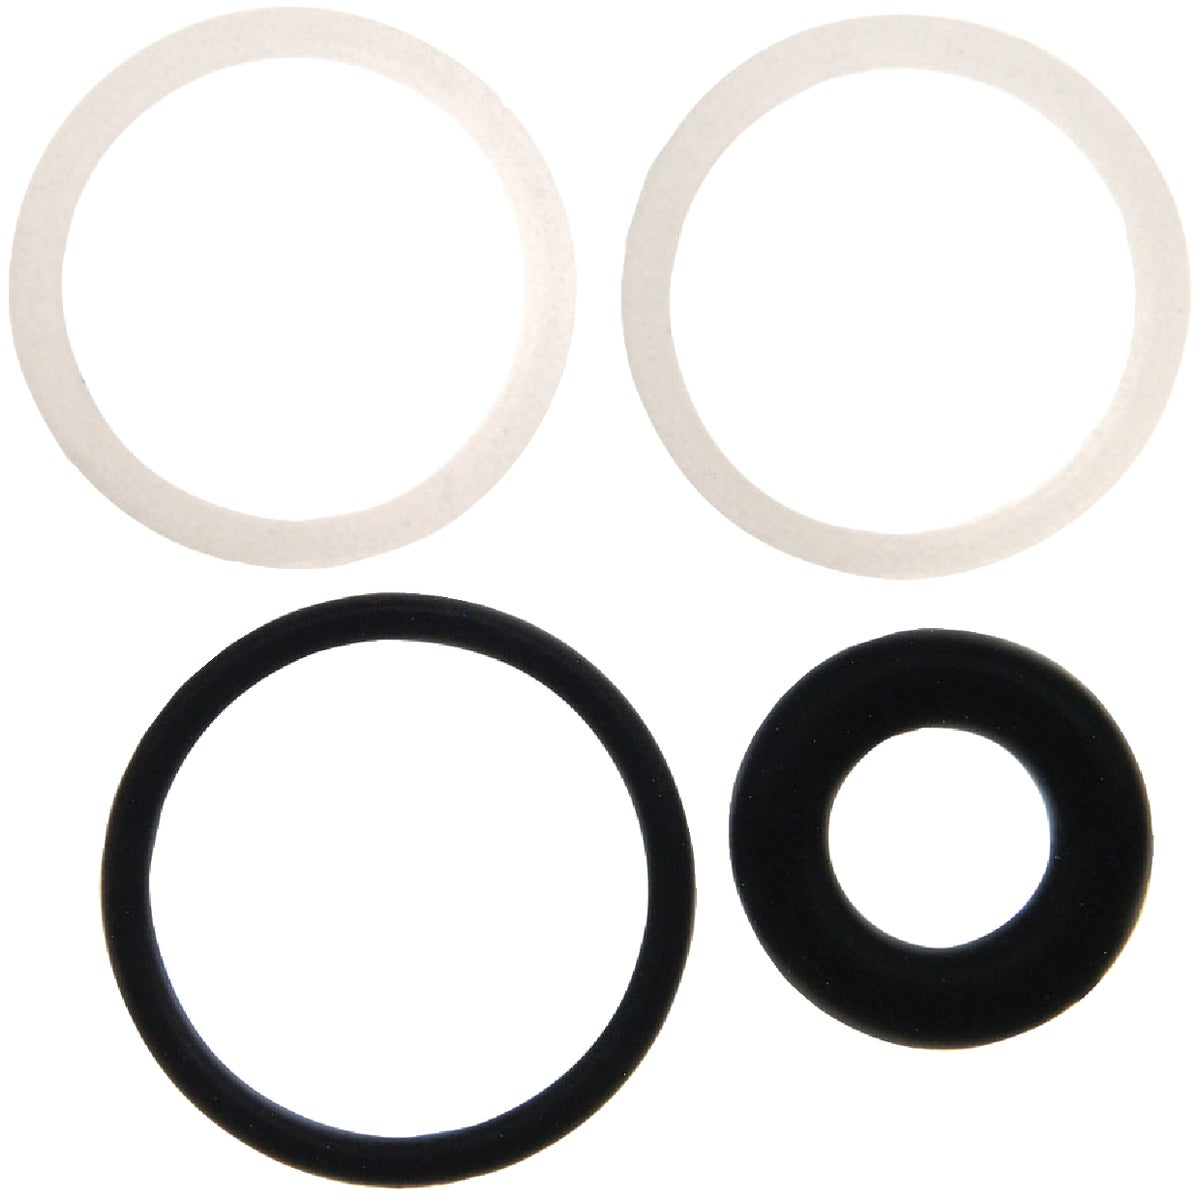 DELEX REPAIR KIT - 80384 by Danco Perfect Match